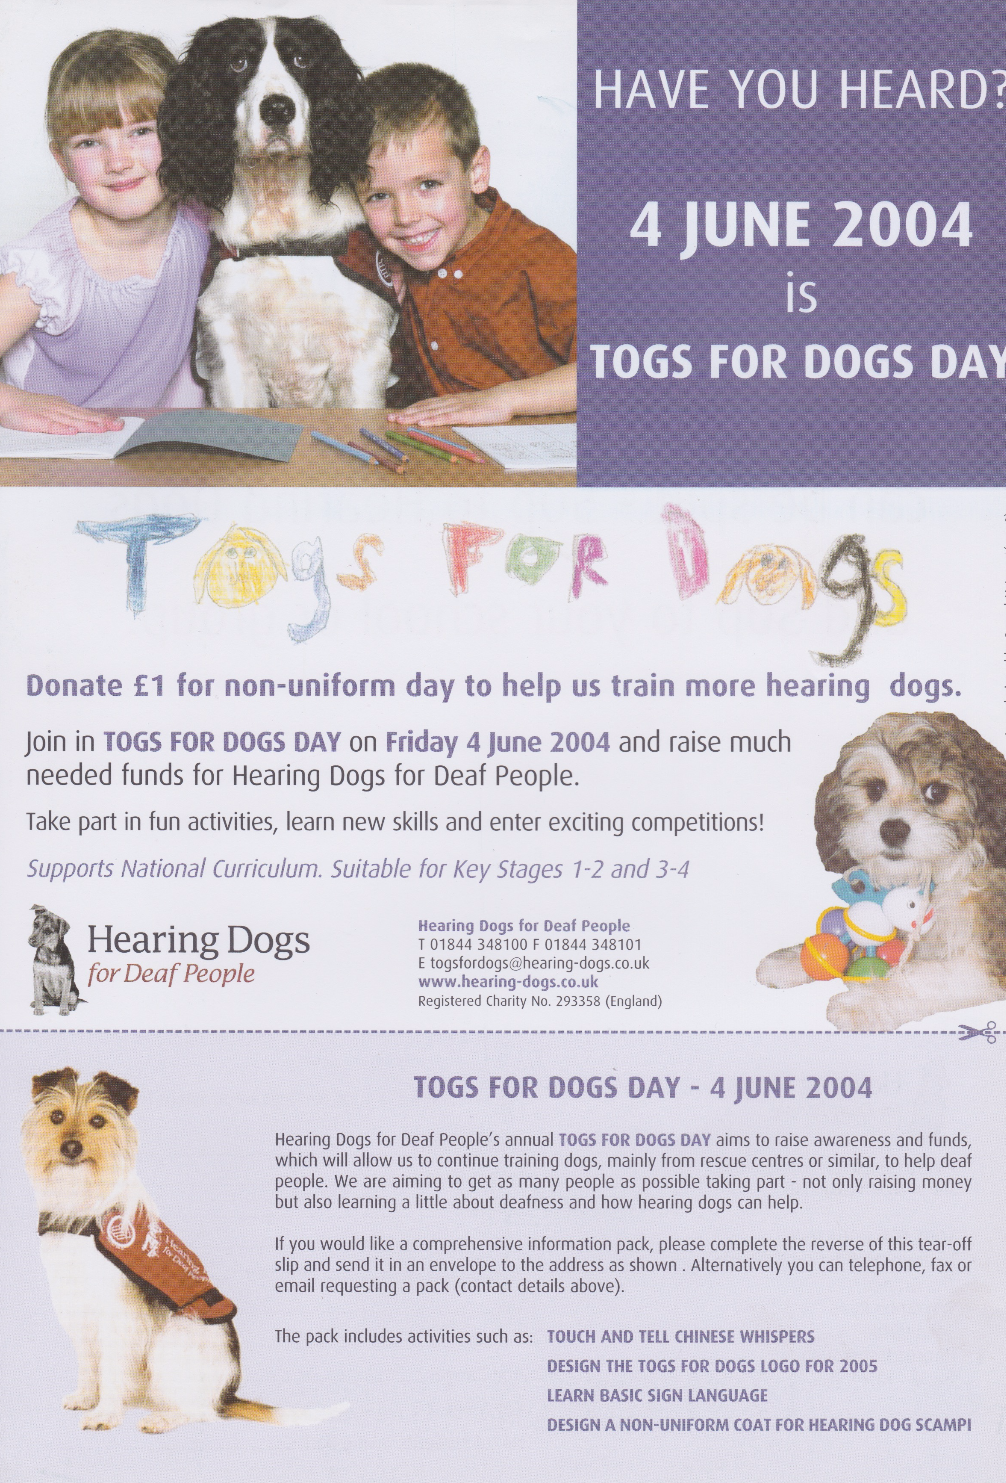 Hearing dogs for deaf